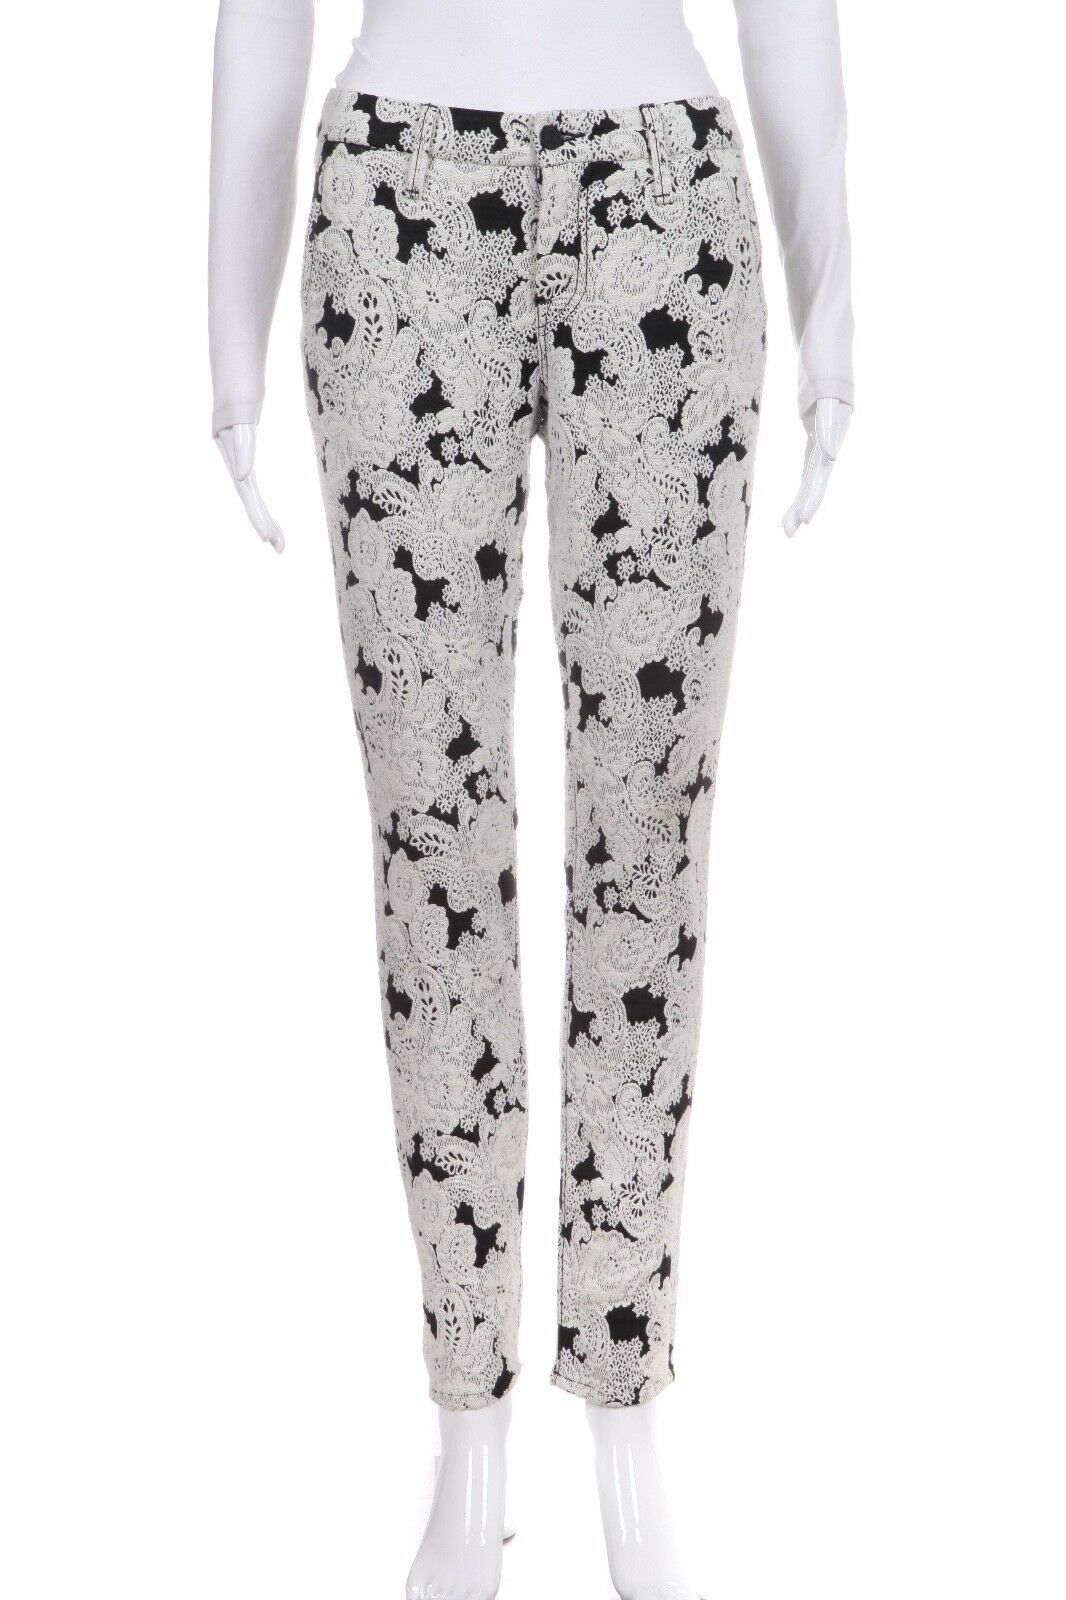 MOTHER The Looker Prep Pants Black White Embroidered Size 26